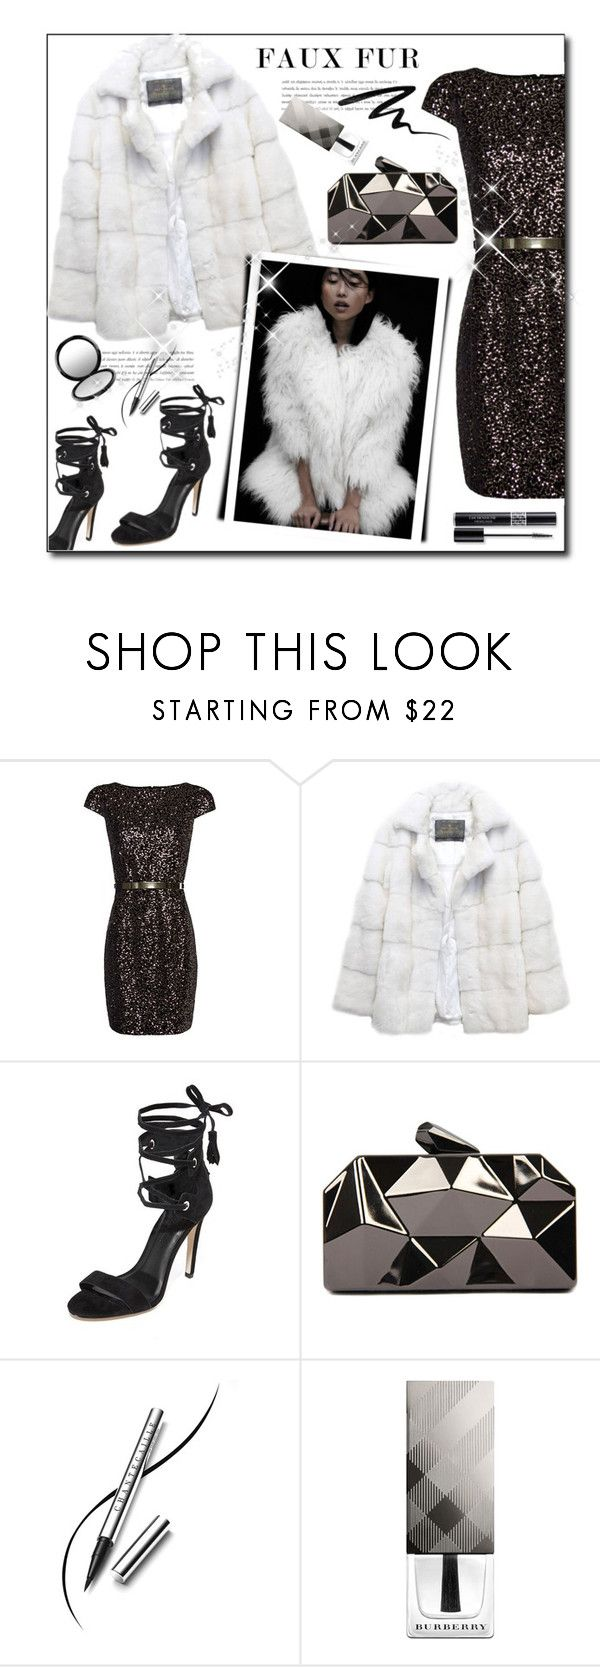 """Faux Fur coats"" by court8434 ❤ liked on Polyvore featuring MANGO, Lilly e Violetta, Rebecca Minkoff, WithChic, Smashbox, Chantecaille, Burberry, Christian Dior, MAC Cosmetics and MyStyle"